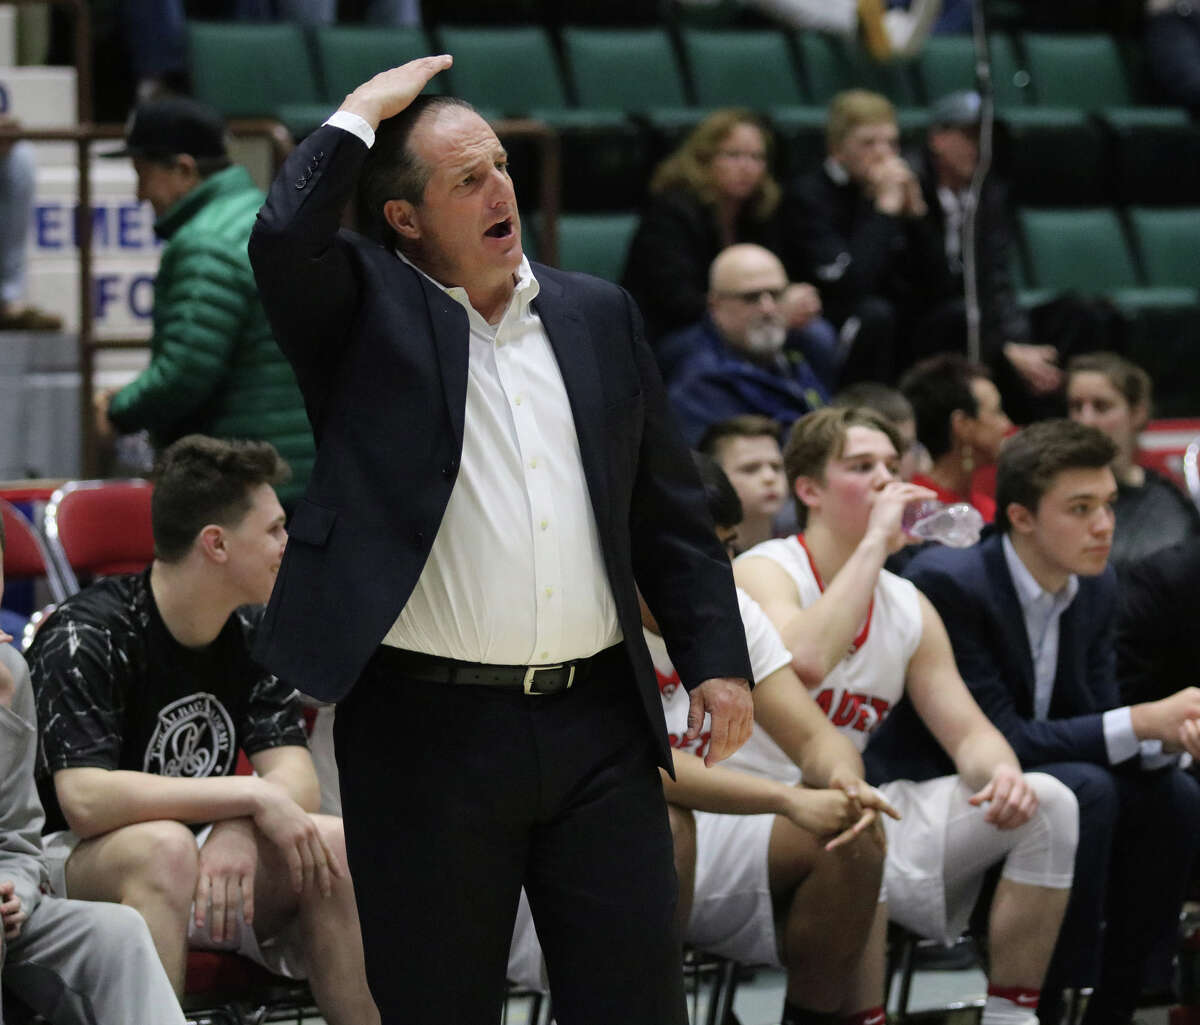 Albany Academy head coach Brian Fruscio signals his players during the Class A Federation basketball final against Walton High School at the Glens Falls Civic Center Sunday, March 26, 2017. (Ed Burke-Special to The Times Union)